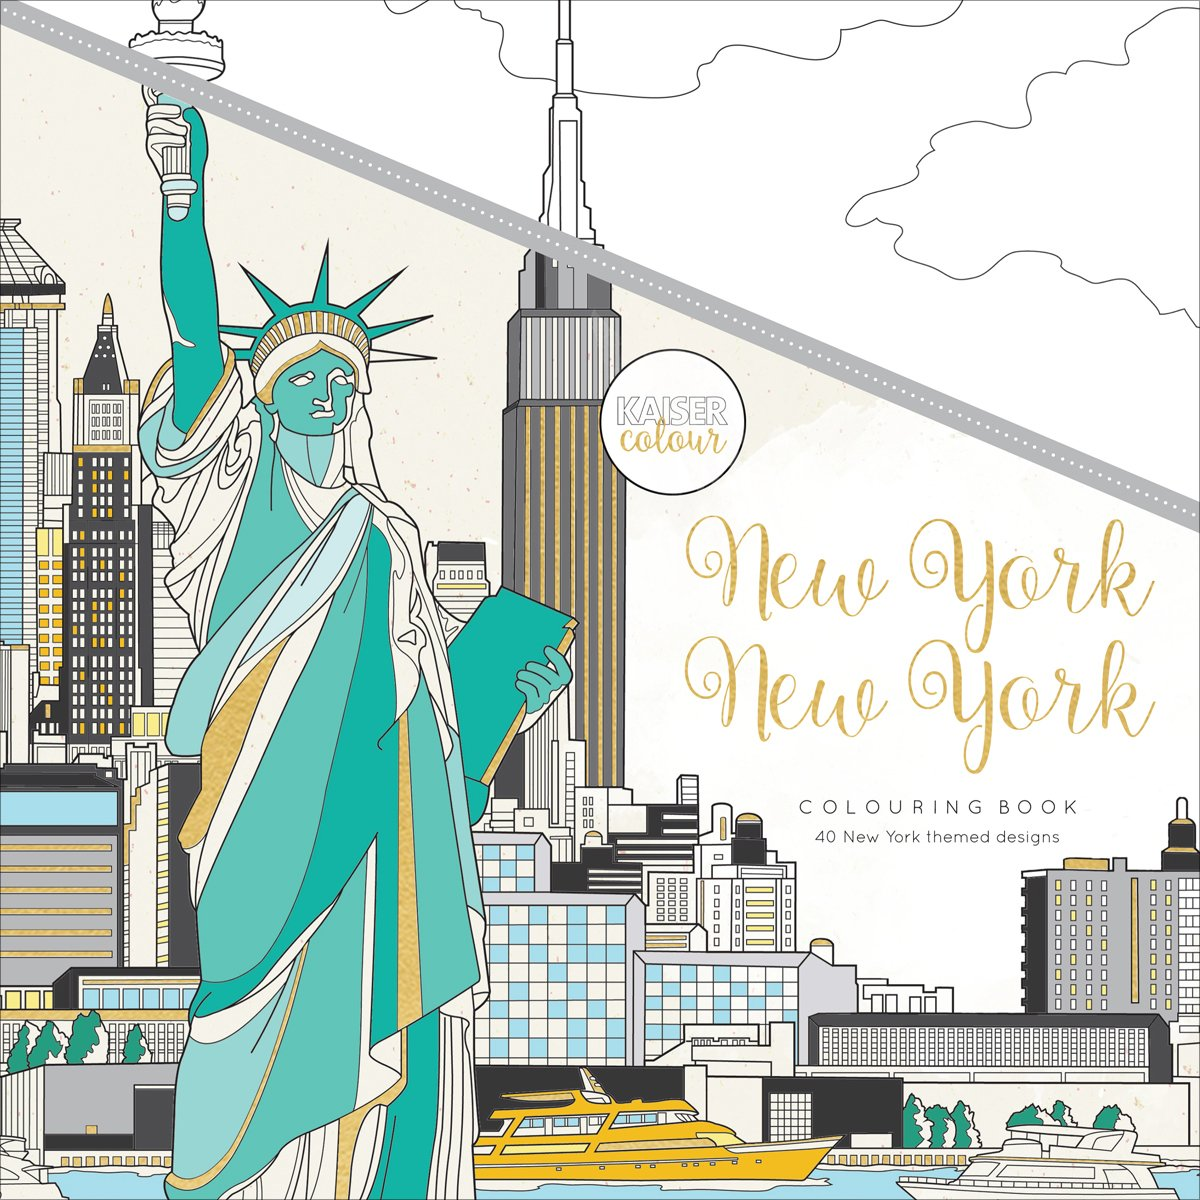 Kaisercraft New York KaiserColour Perfect Bound Coloring Book, 9.75